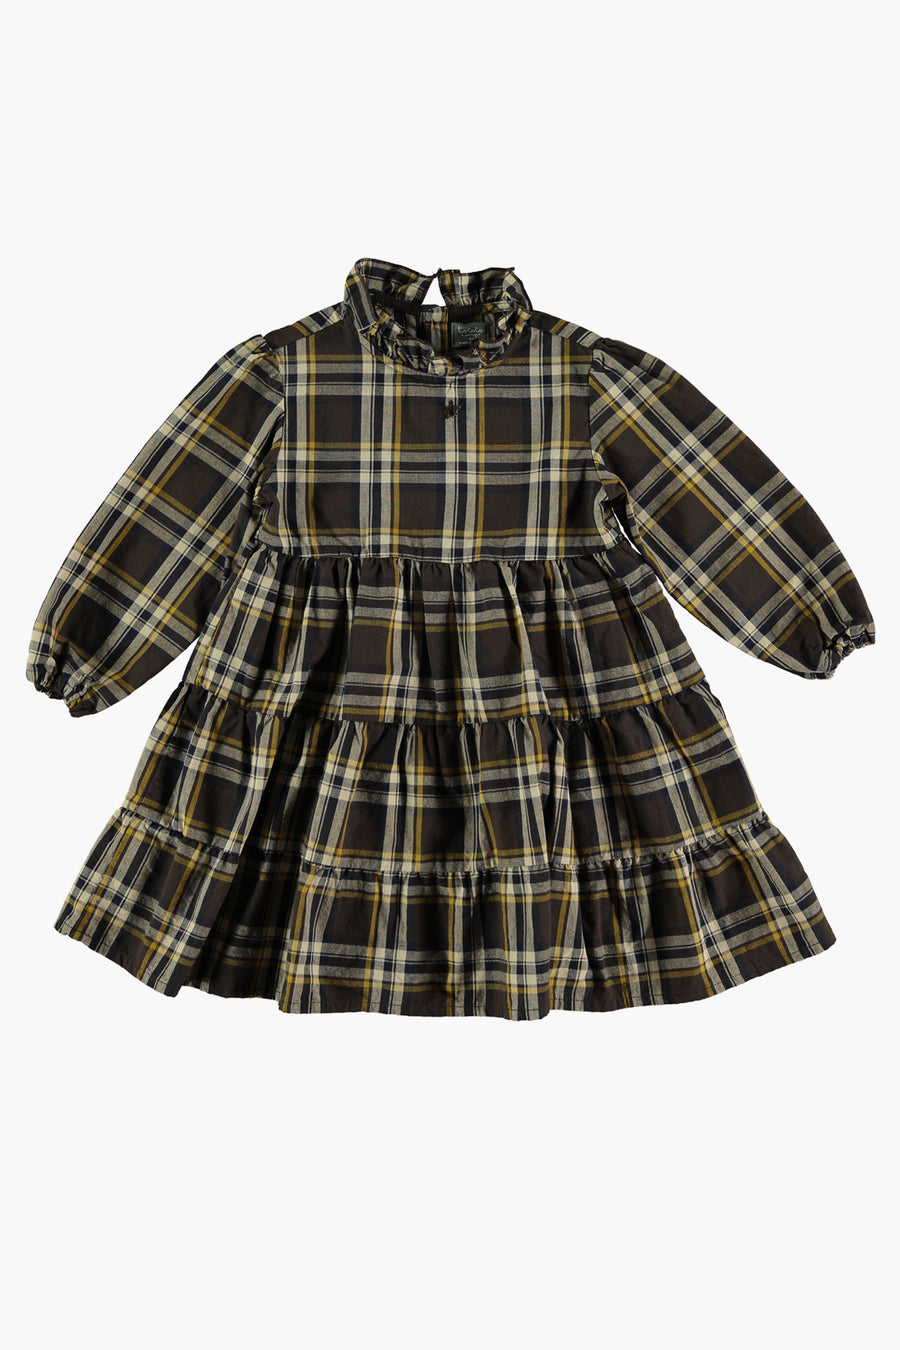 Tocoto Vintage Tartan Plaid Girls Dress